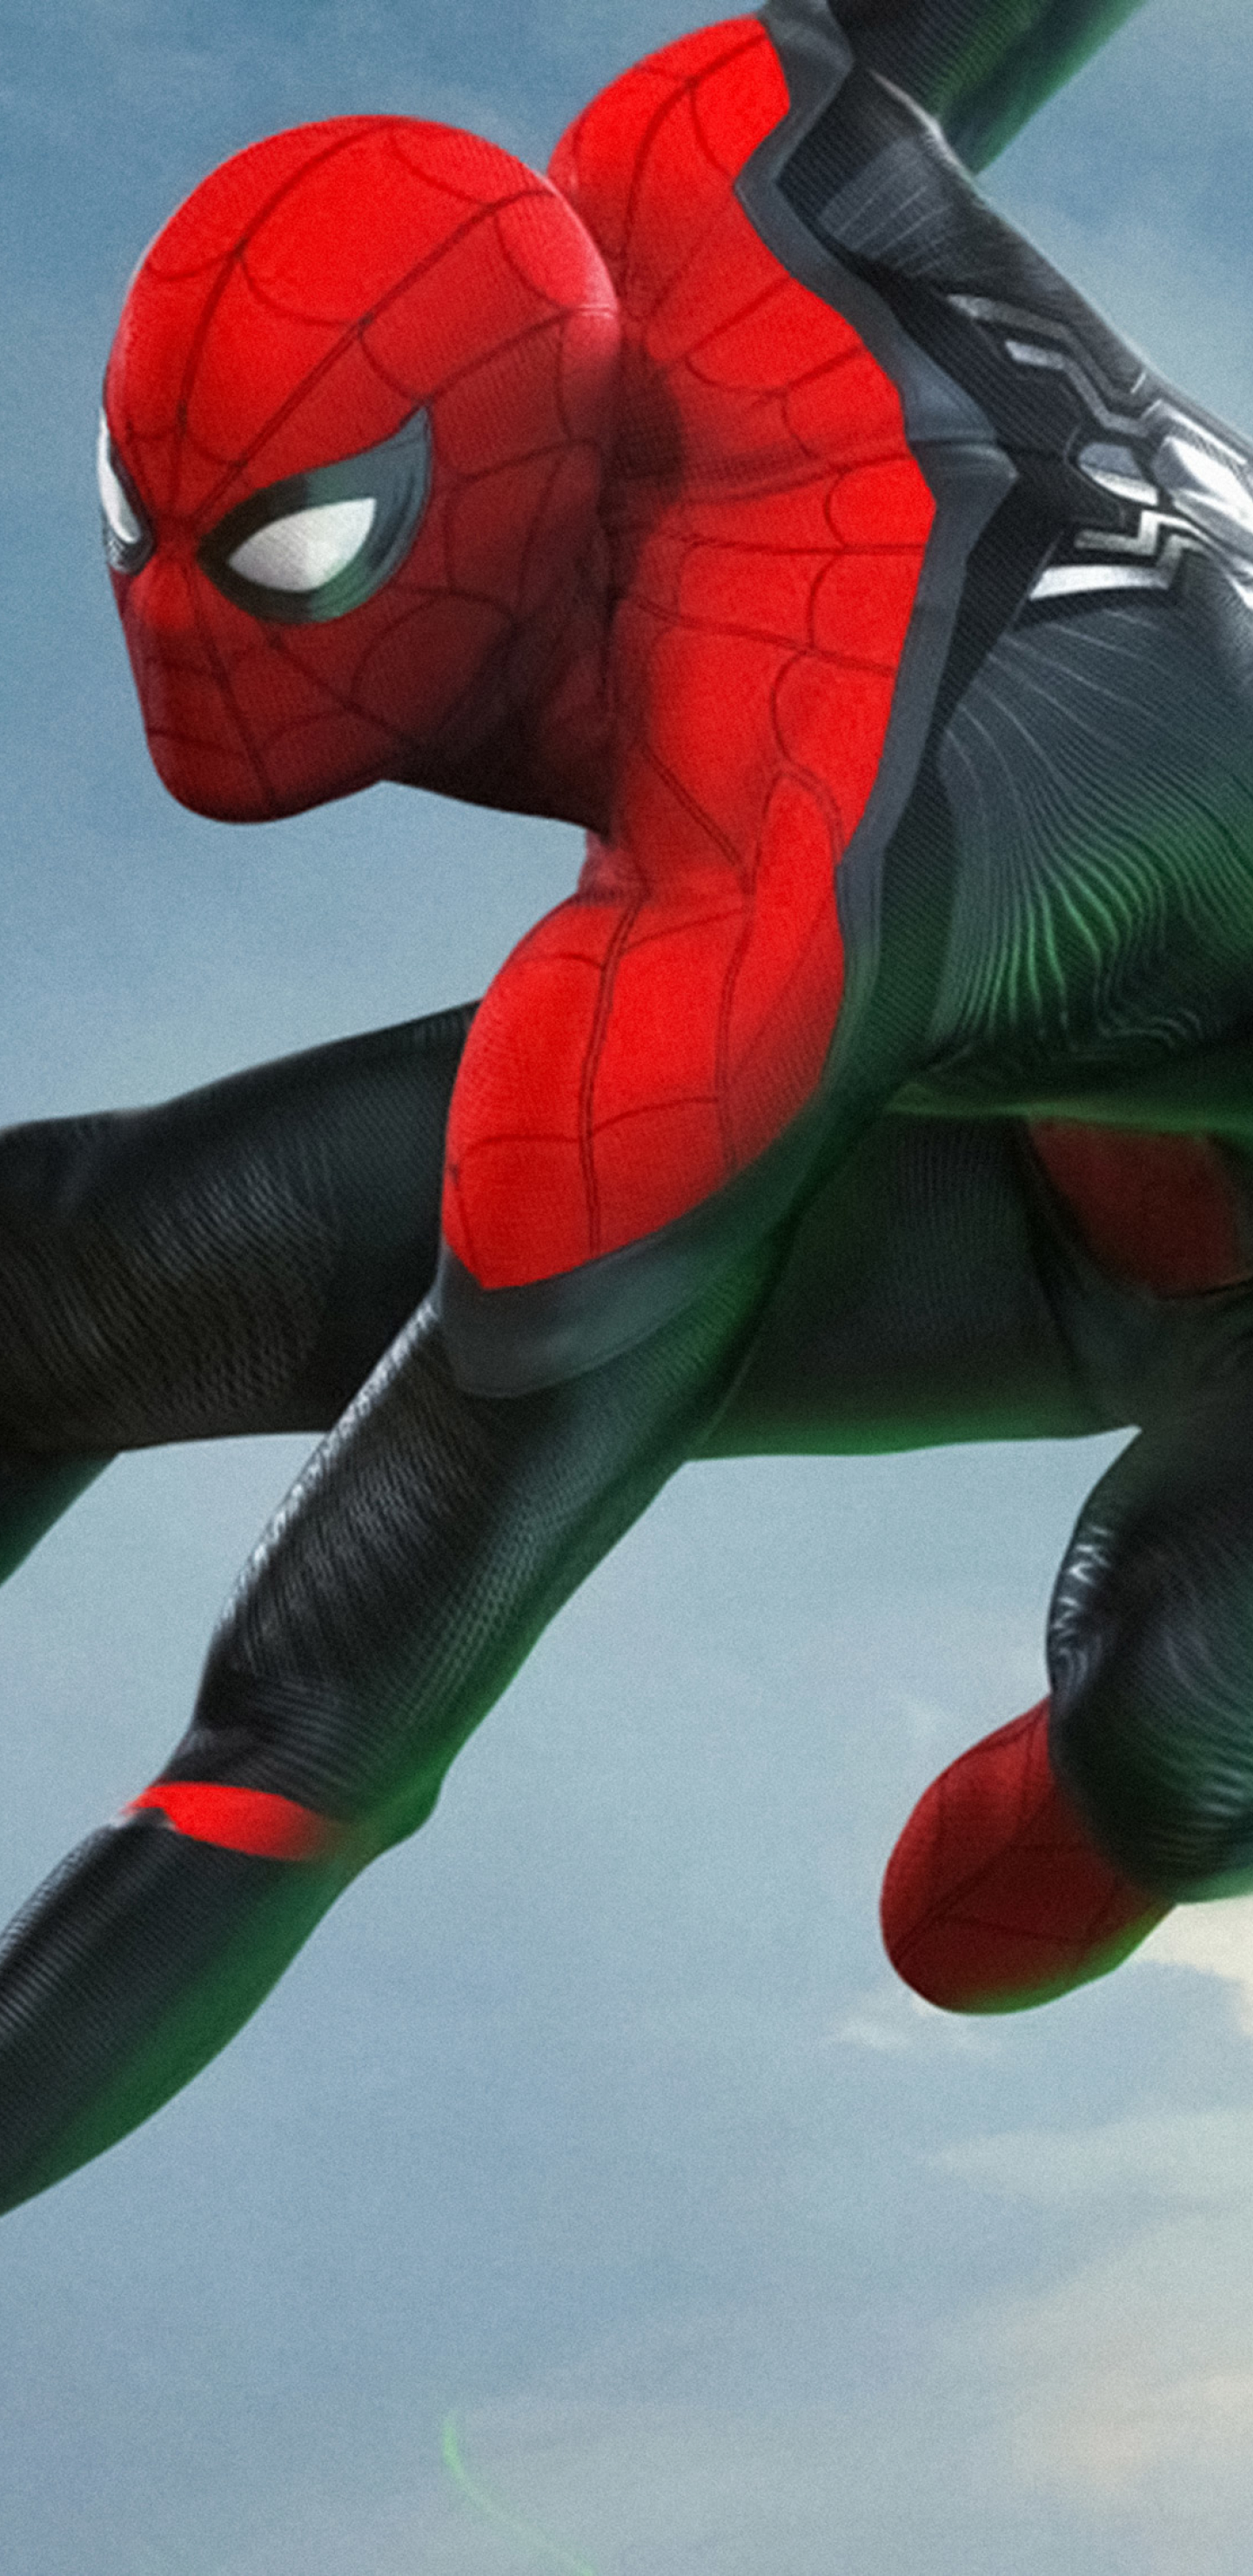 1440x2960 4K Poster Of Spider-Man Far From Home Samsung ...